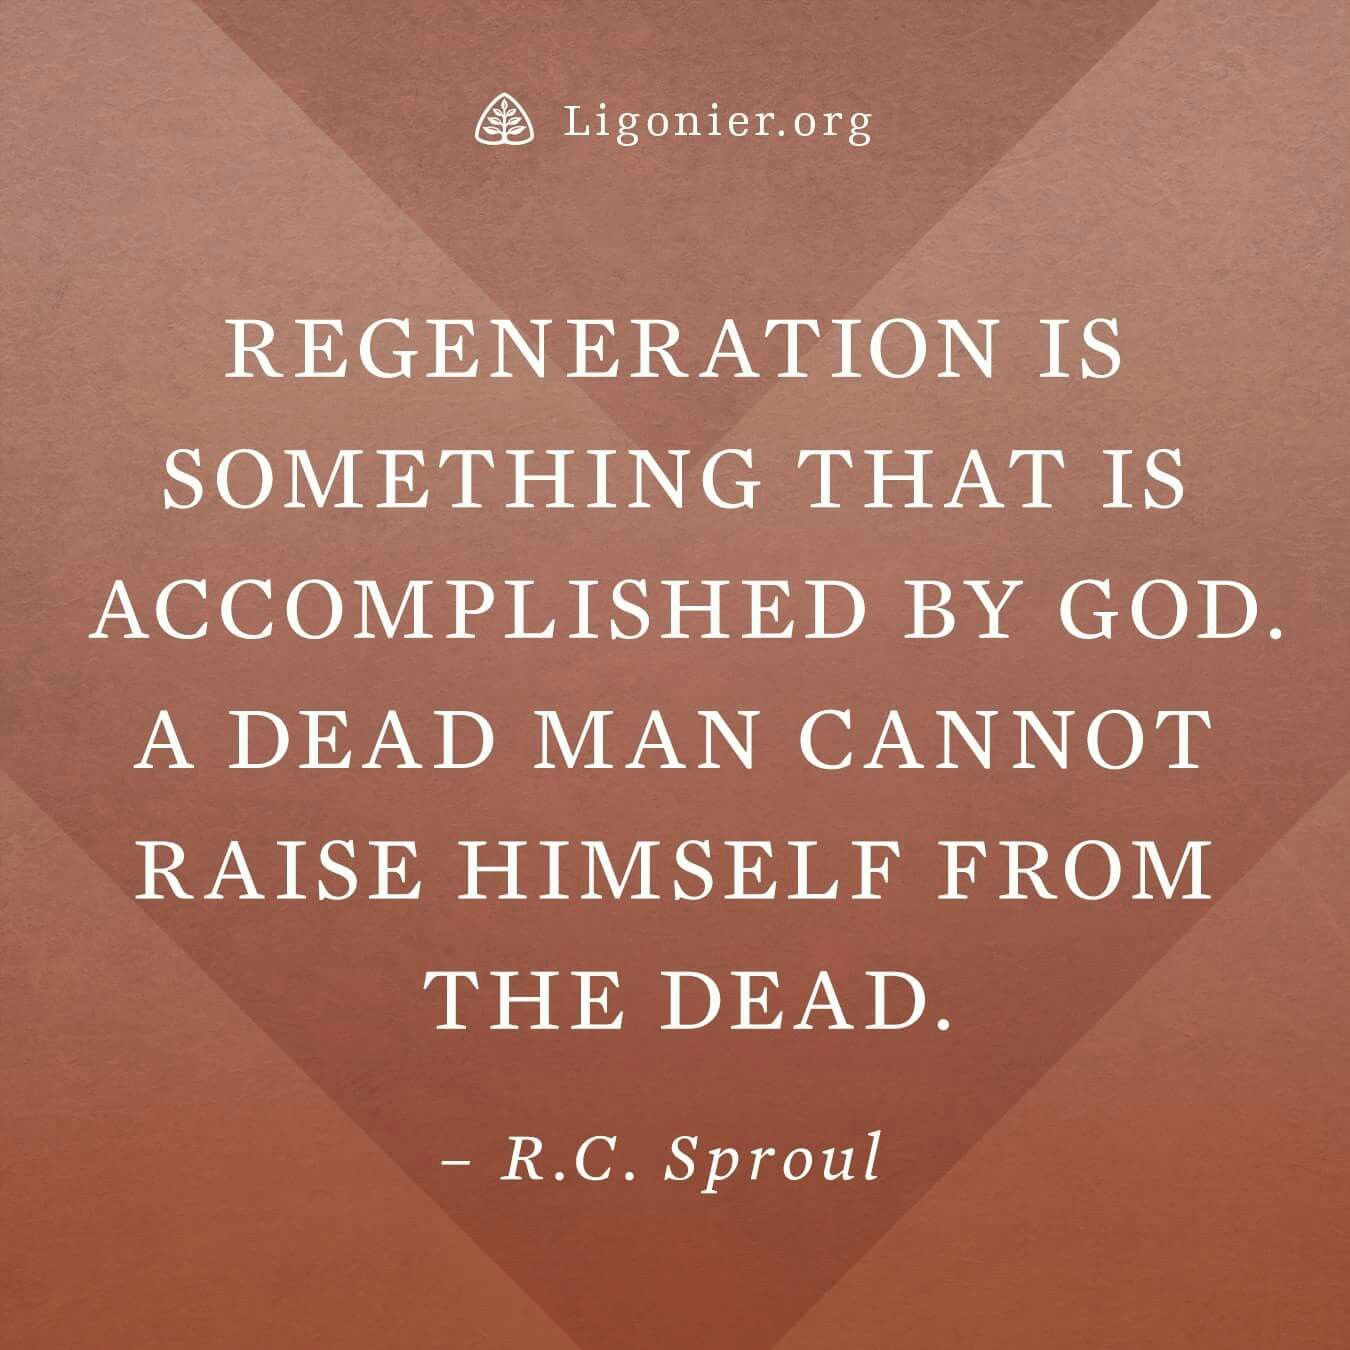 Christian Life Quotes Christian Quotes  R.csproul Quotes  Regeneration  Conversion